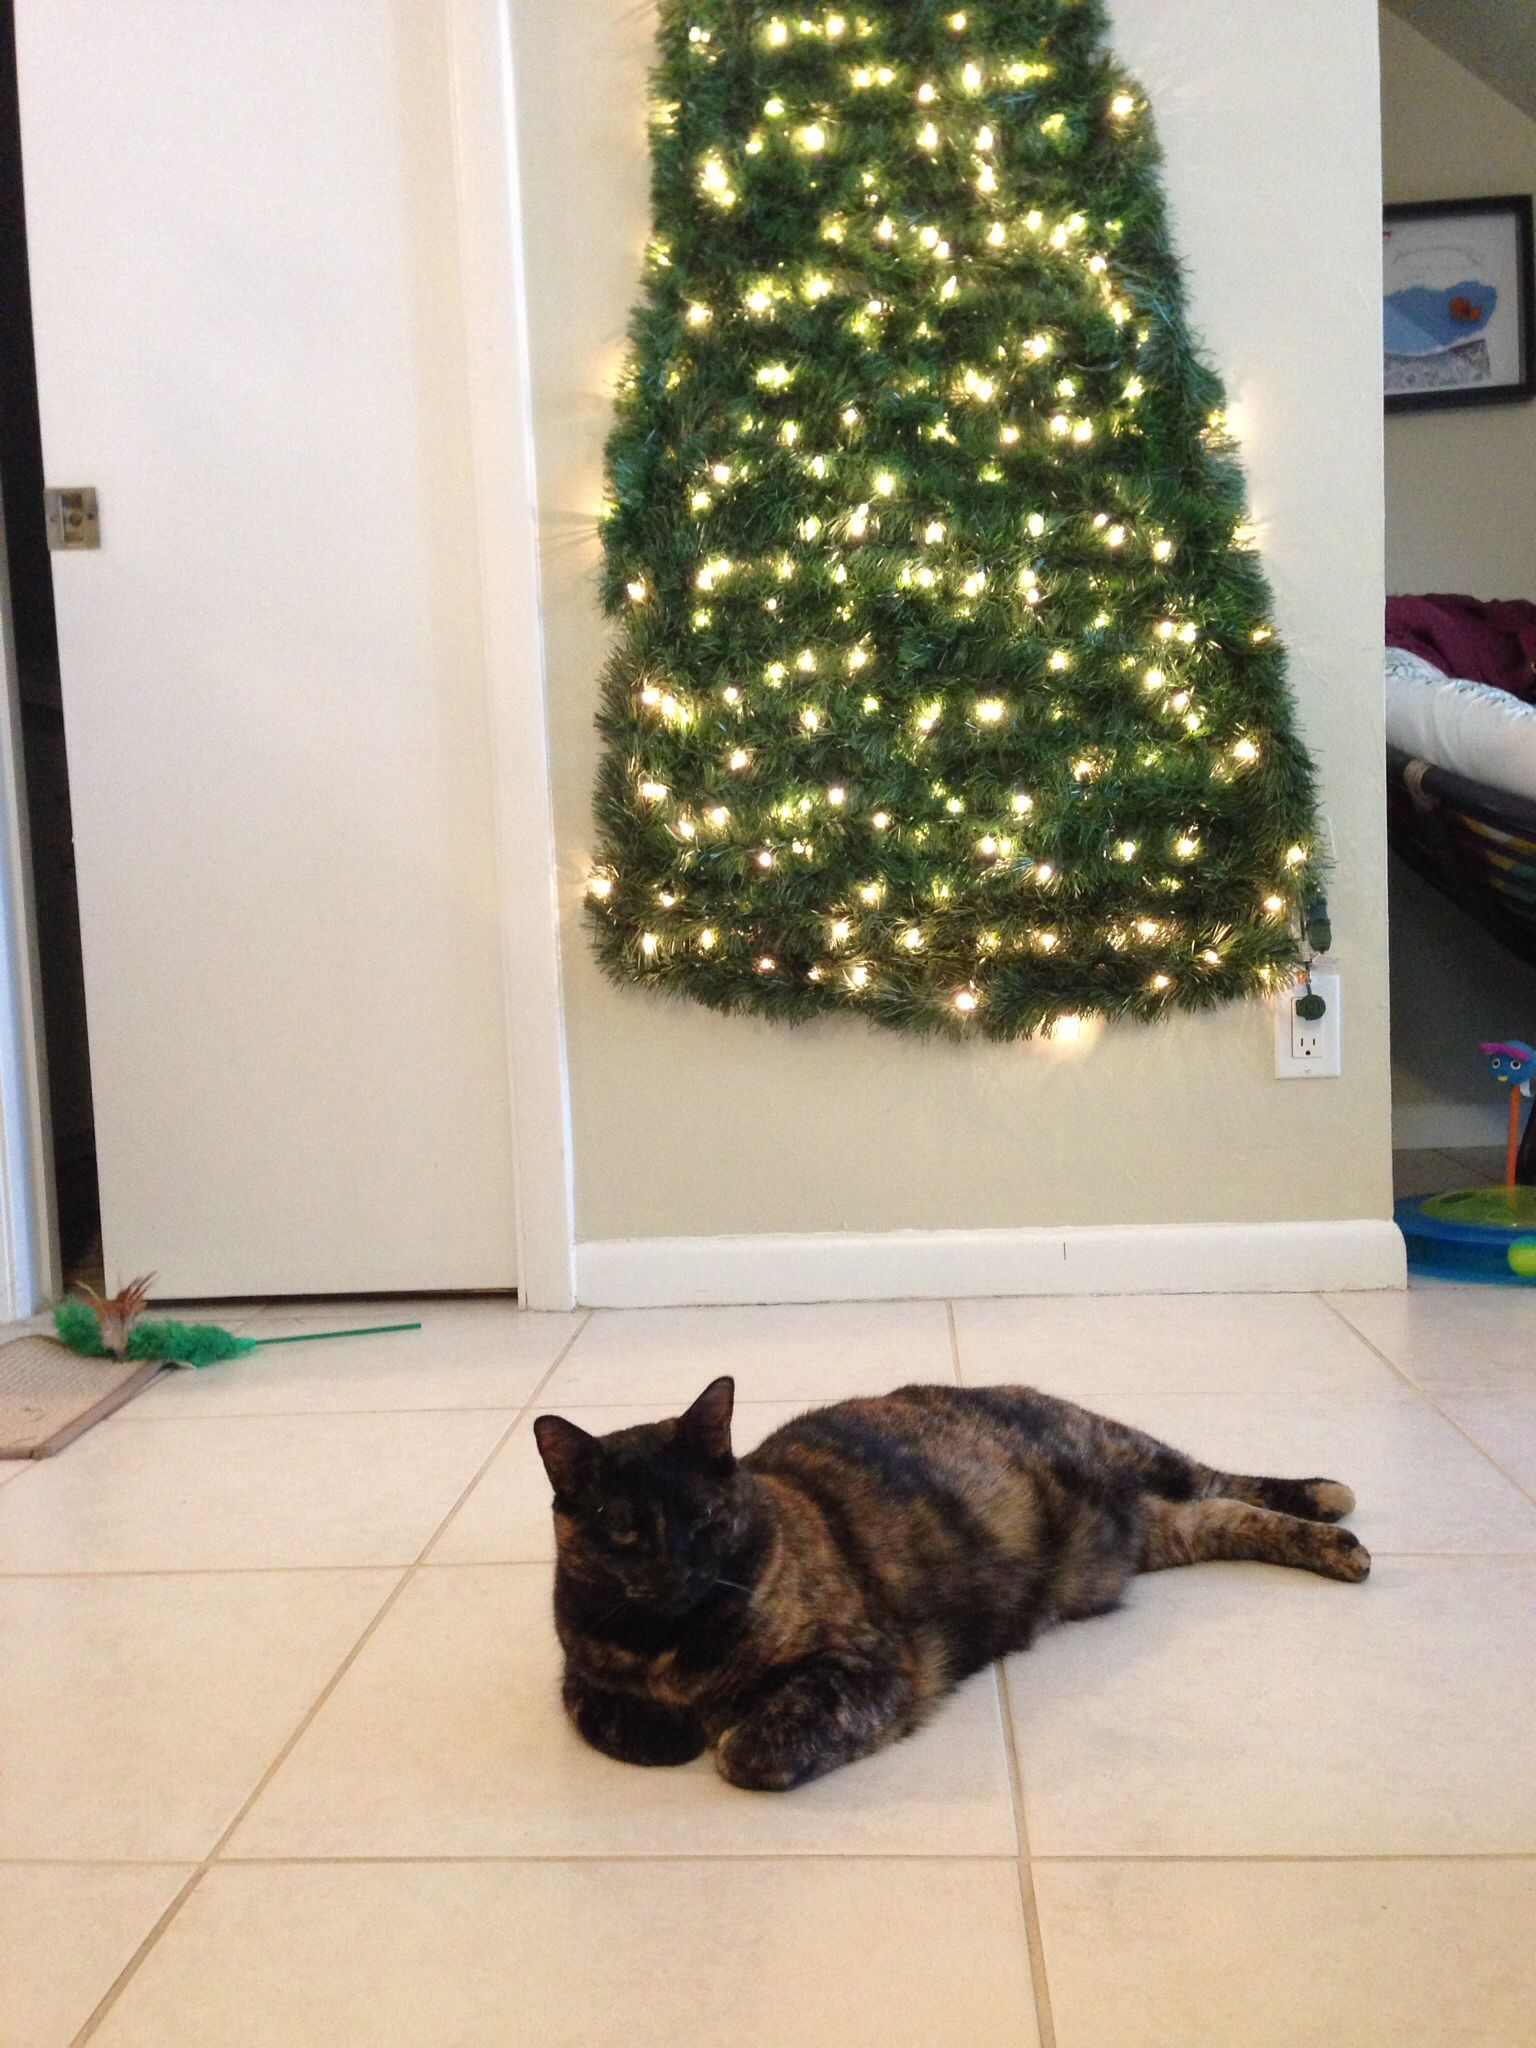 My Cat Proof Christmas Tree ) #Christmastree #Catproof #Lol